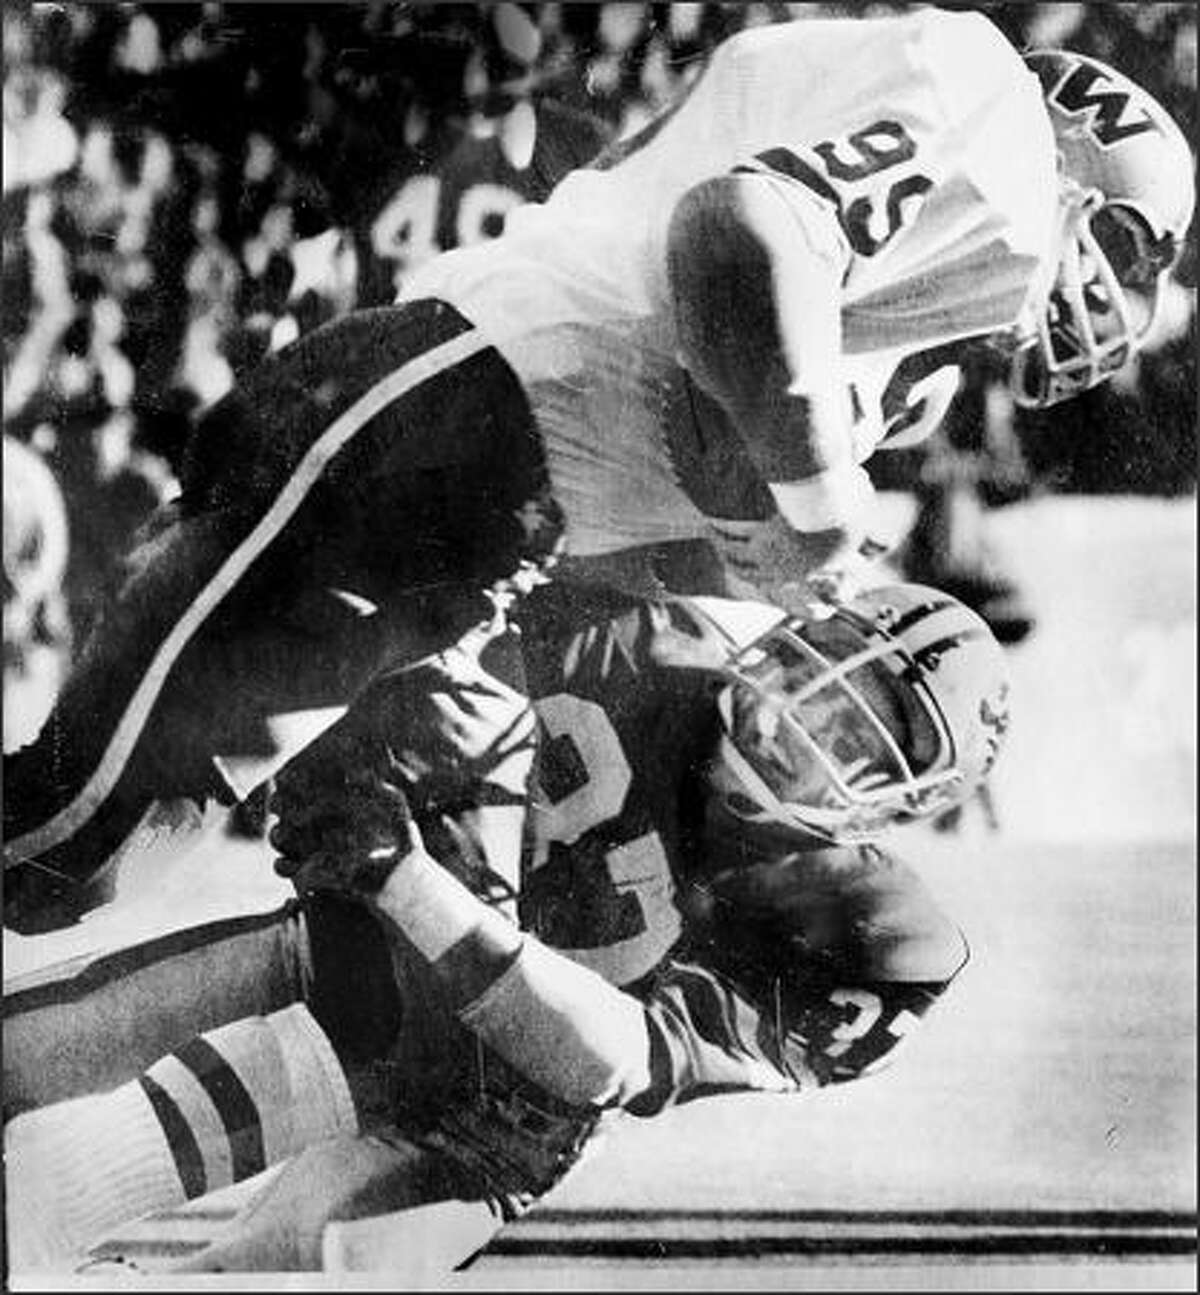 Omak Ken Greene (NFL): Greene, a defensive back, was a first-round pick out of Washington State in 1978 and played seven seasons in the NFL (1978-84). He played for the Rams and Chargers, starting in 73 of 98 career games.   Honorable mention: Don McCormack (MLB, 1980-81), Bob Picard (NFL, 1973-76)